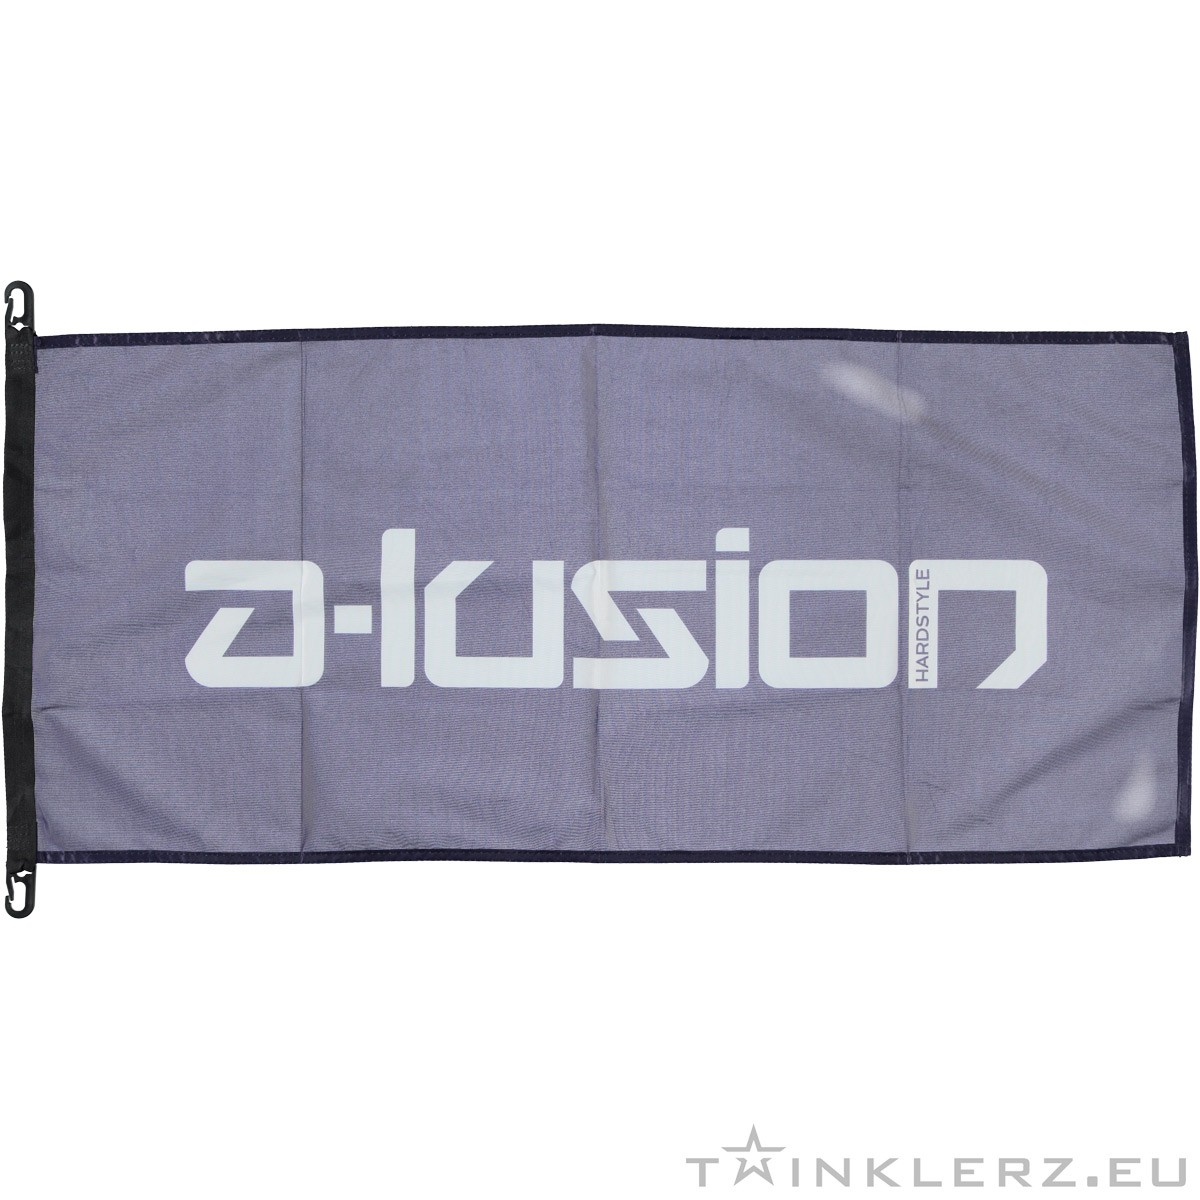 A-lusion hardstyle flag